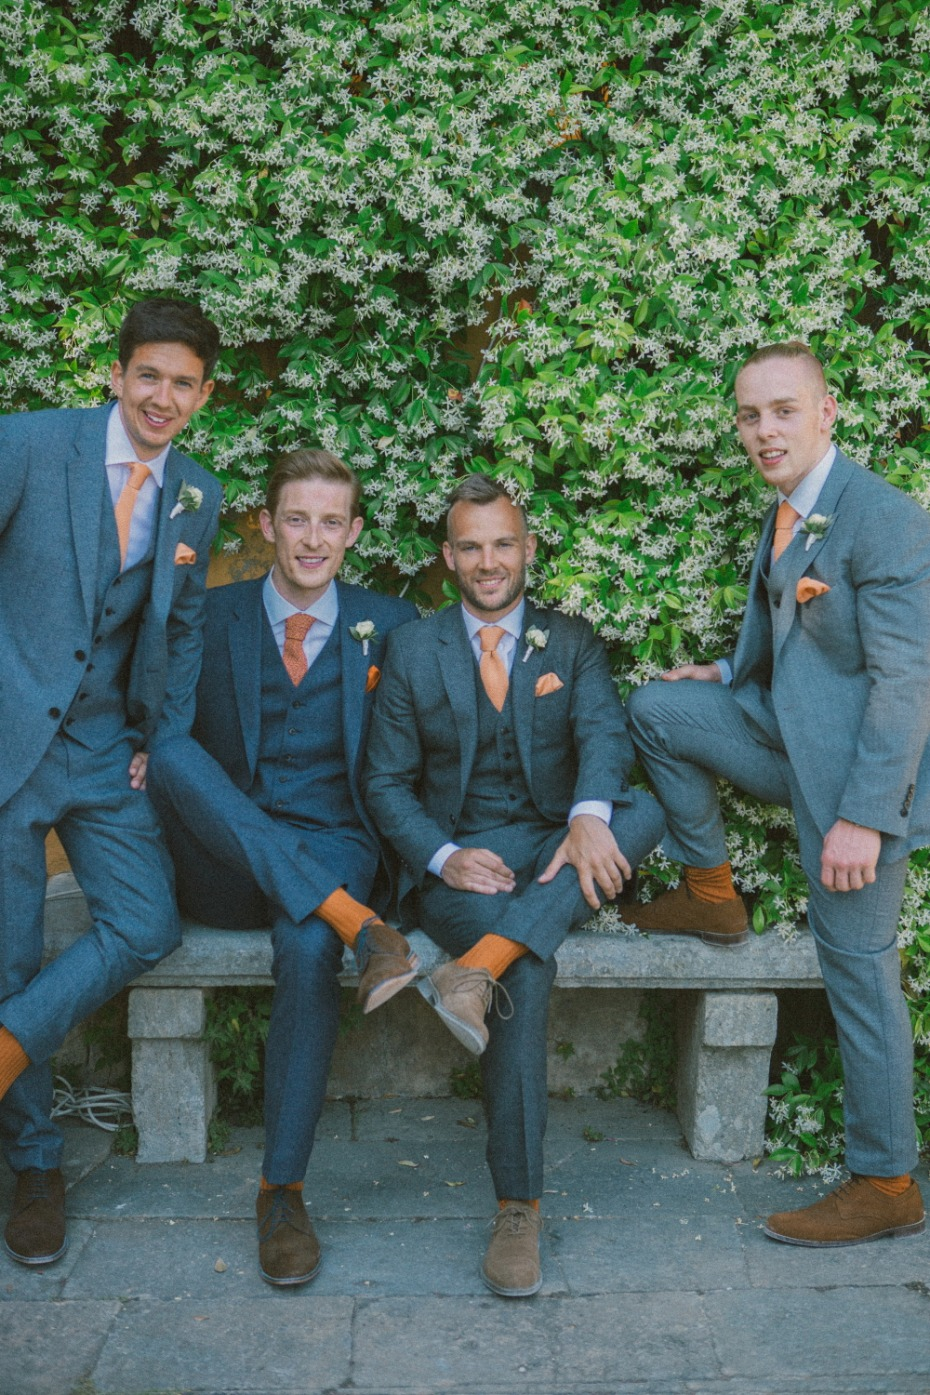 Grey and orange groomsman suits